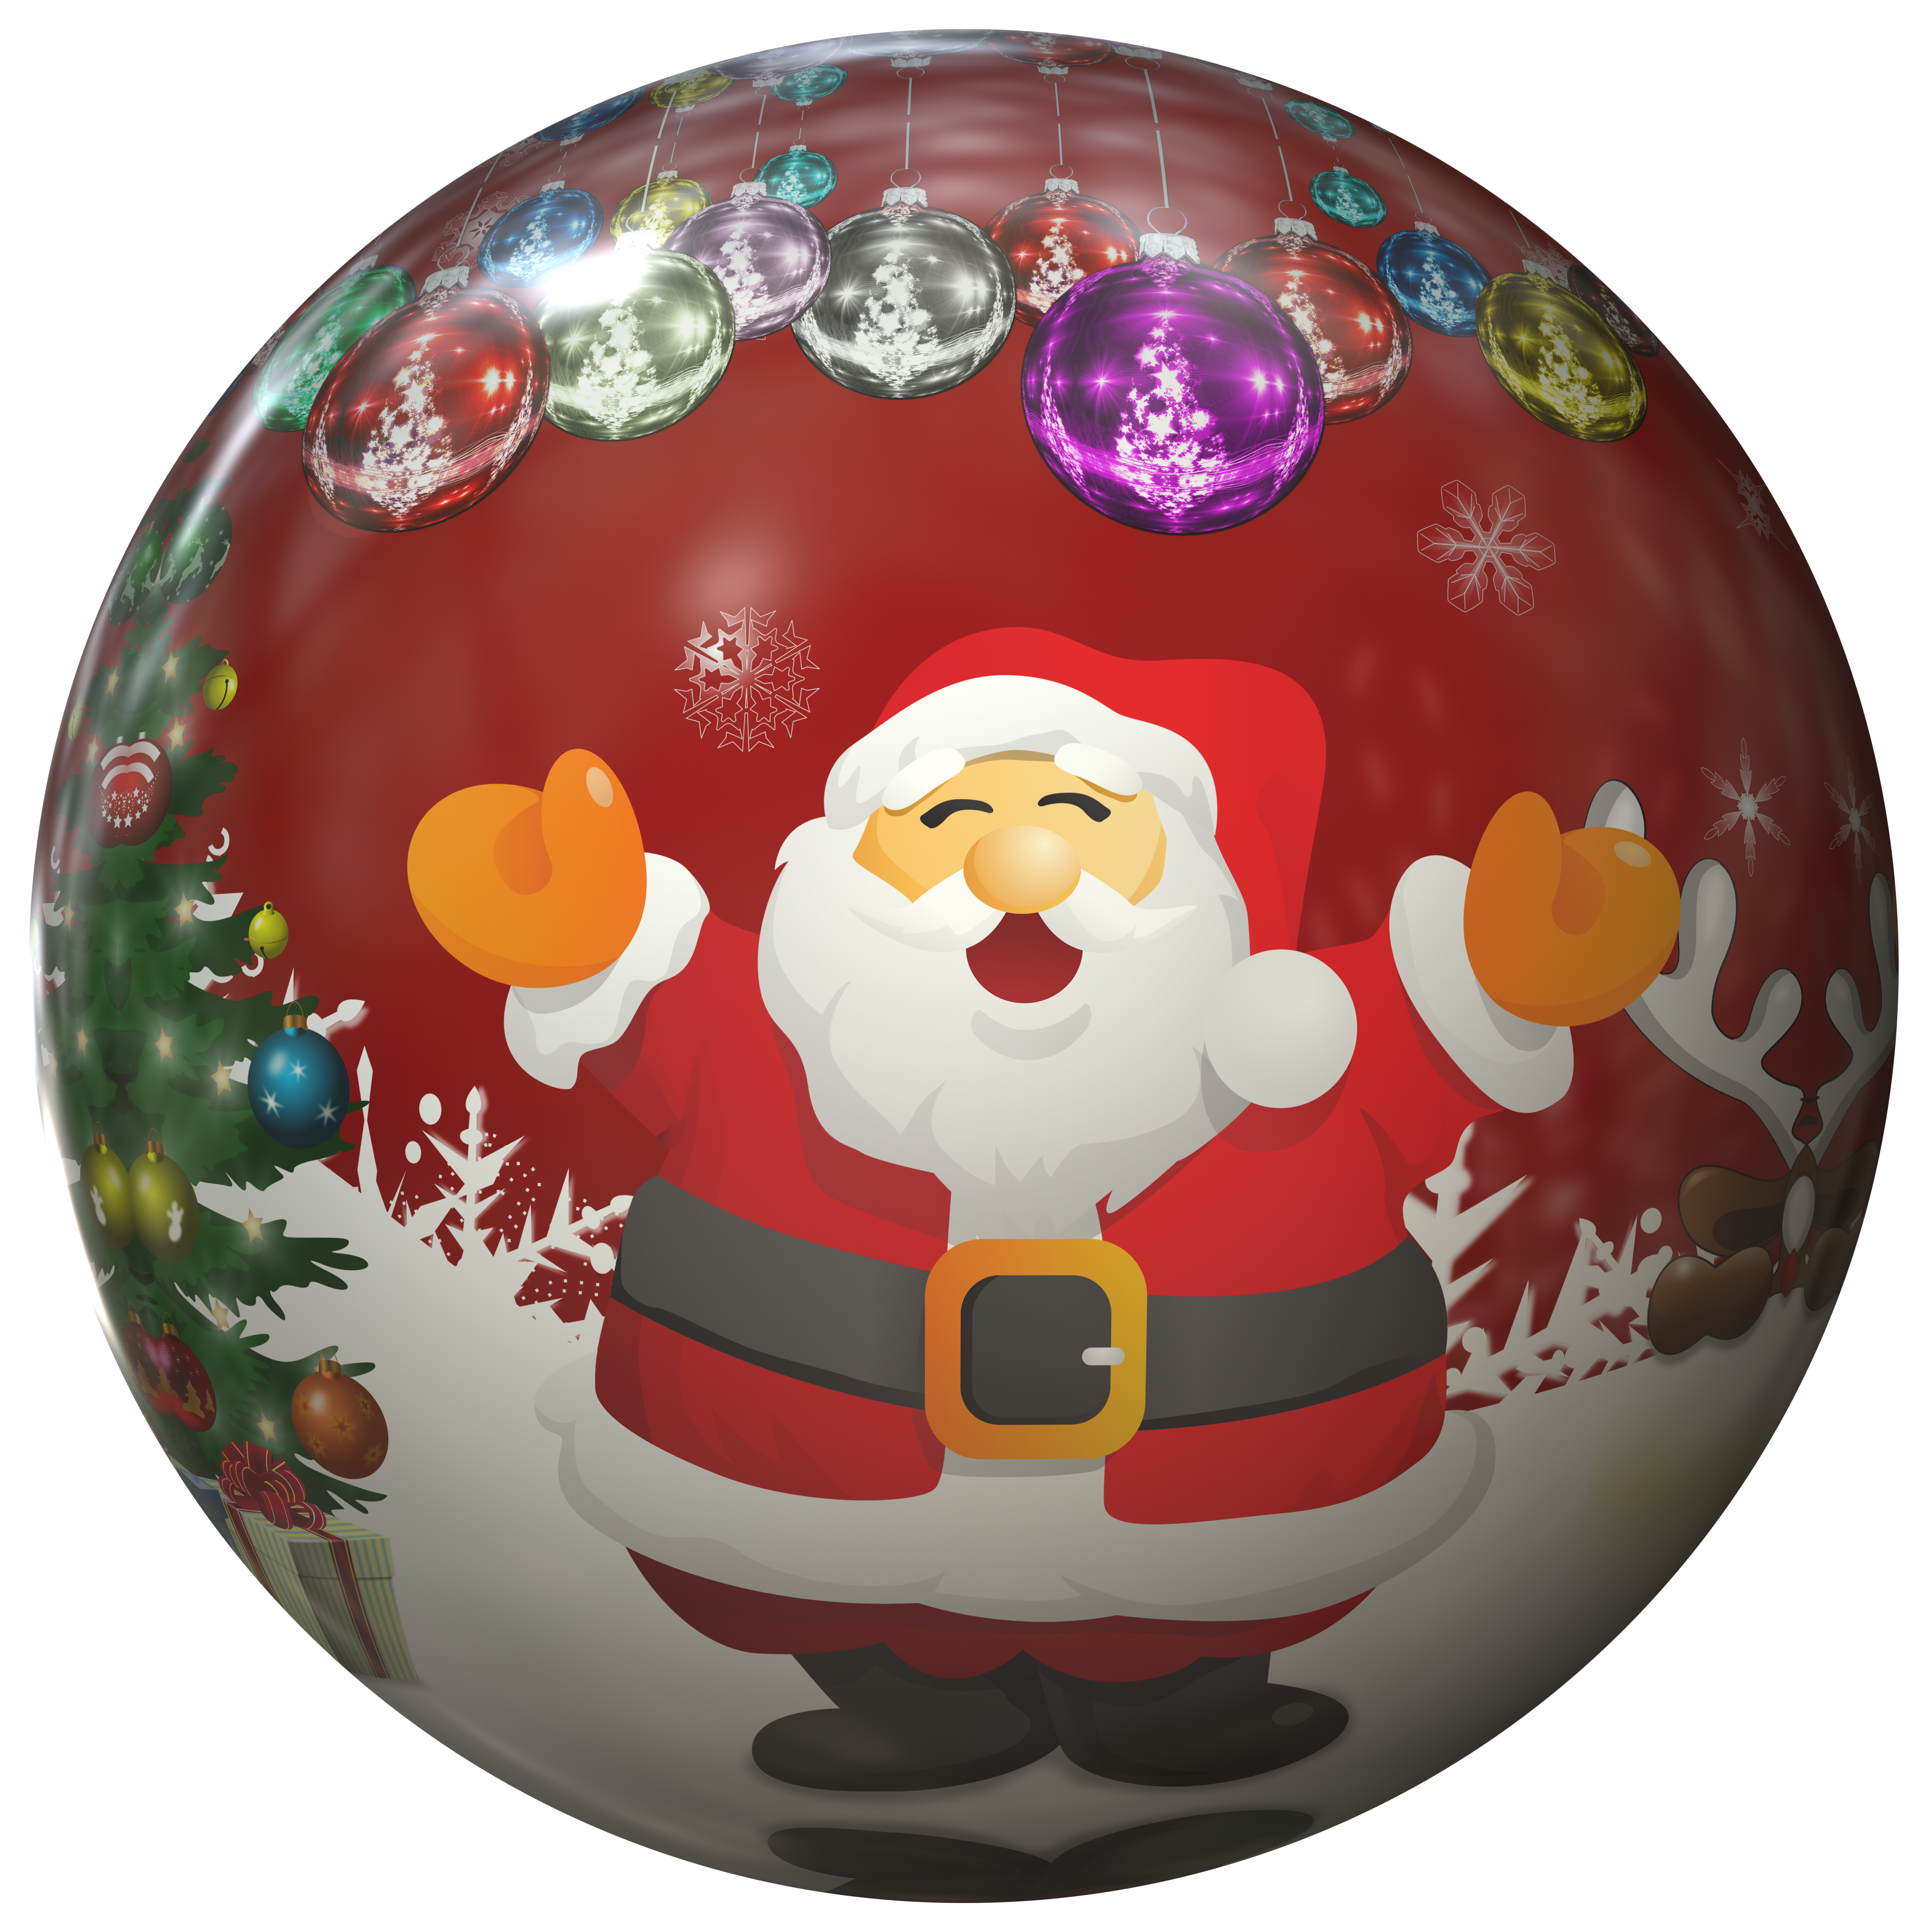 Christmas Bauble with Santa Claus PNG Image